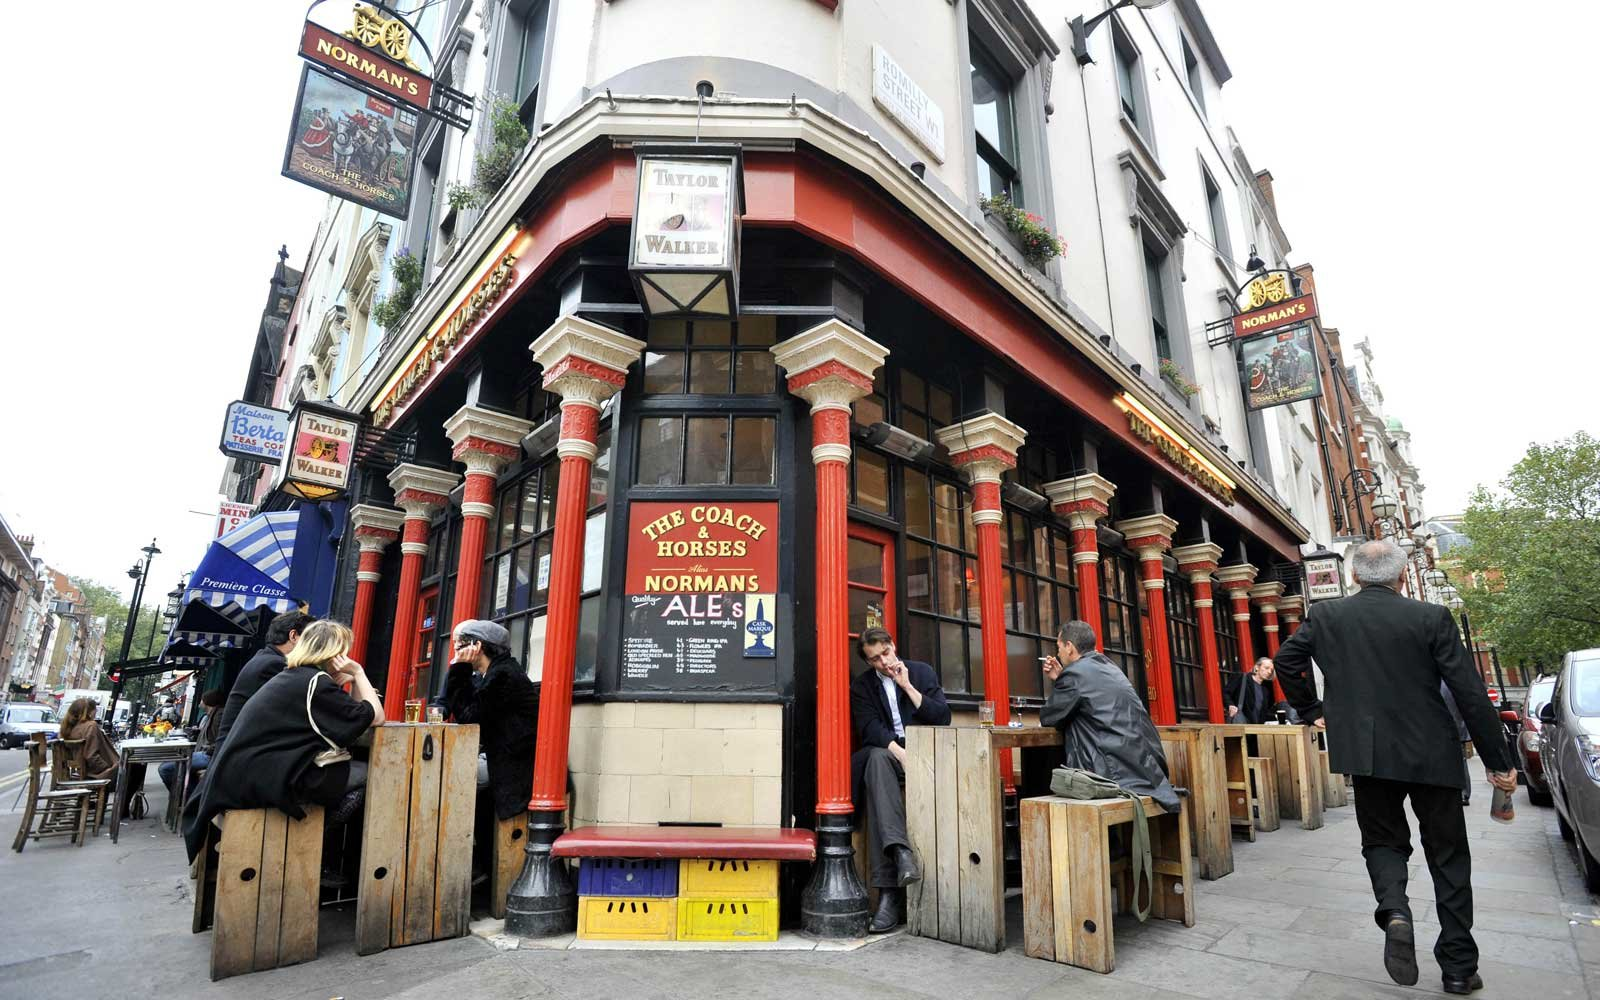 General view of the Coach and Horses pub on Greek Street in London's Soho